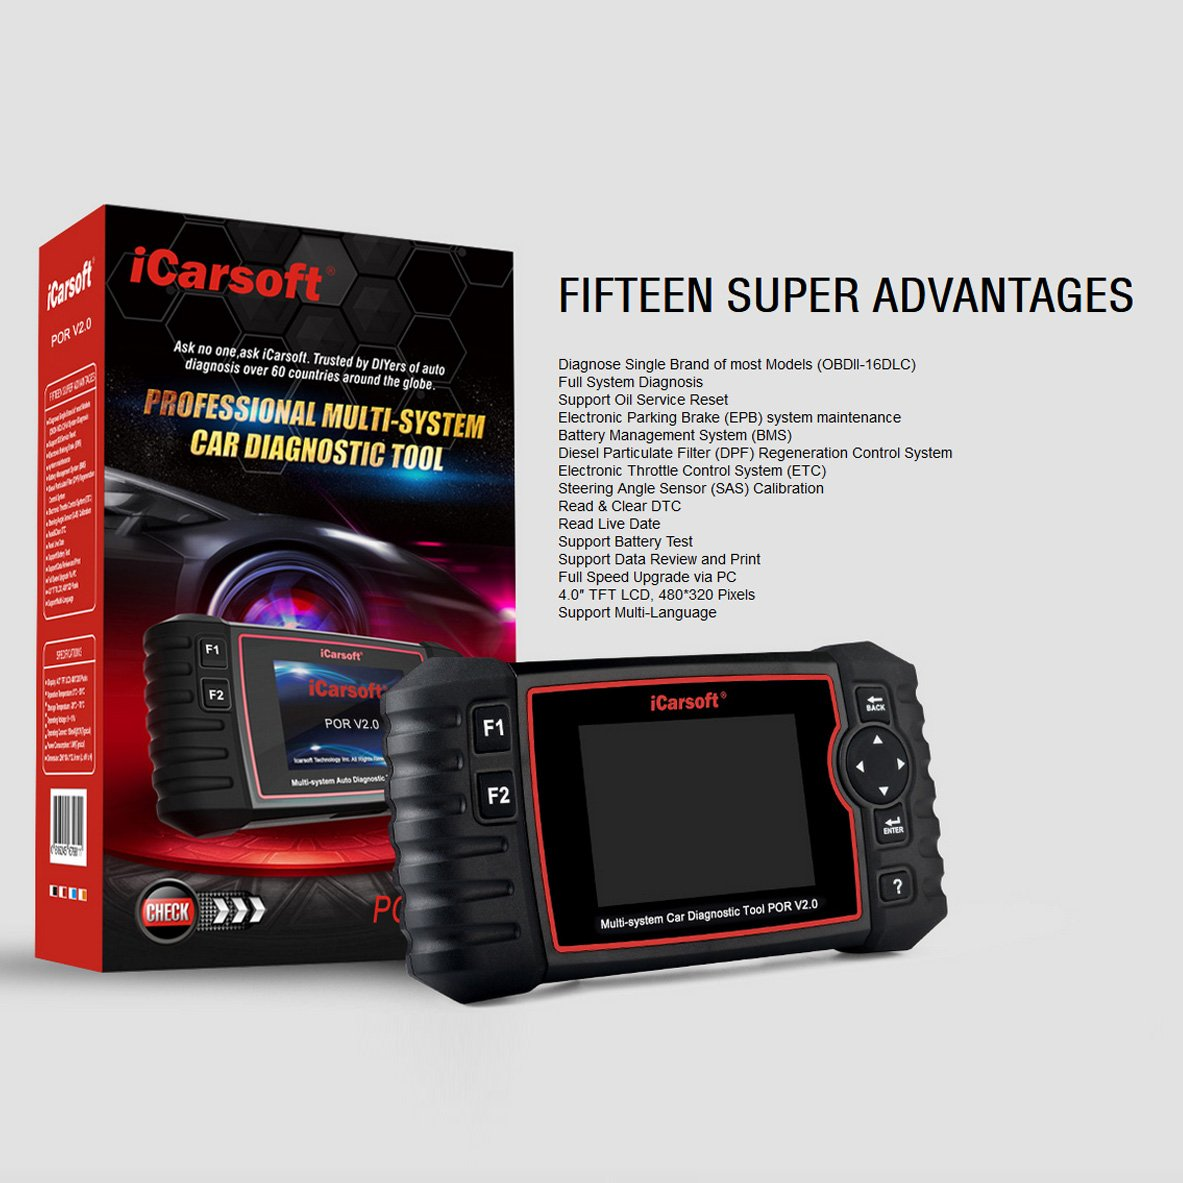 iCarsoft Auto Diagnostic Scanner POR V2.0 for Porsche with ABS Scan,Oil Service Reset ect by iCarsoft (Image #3)